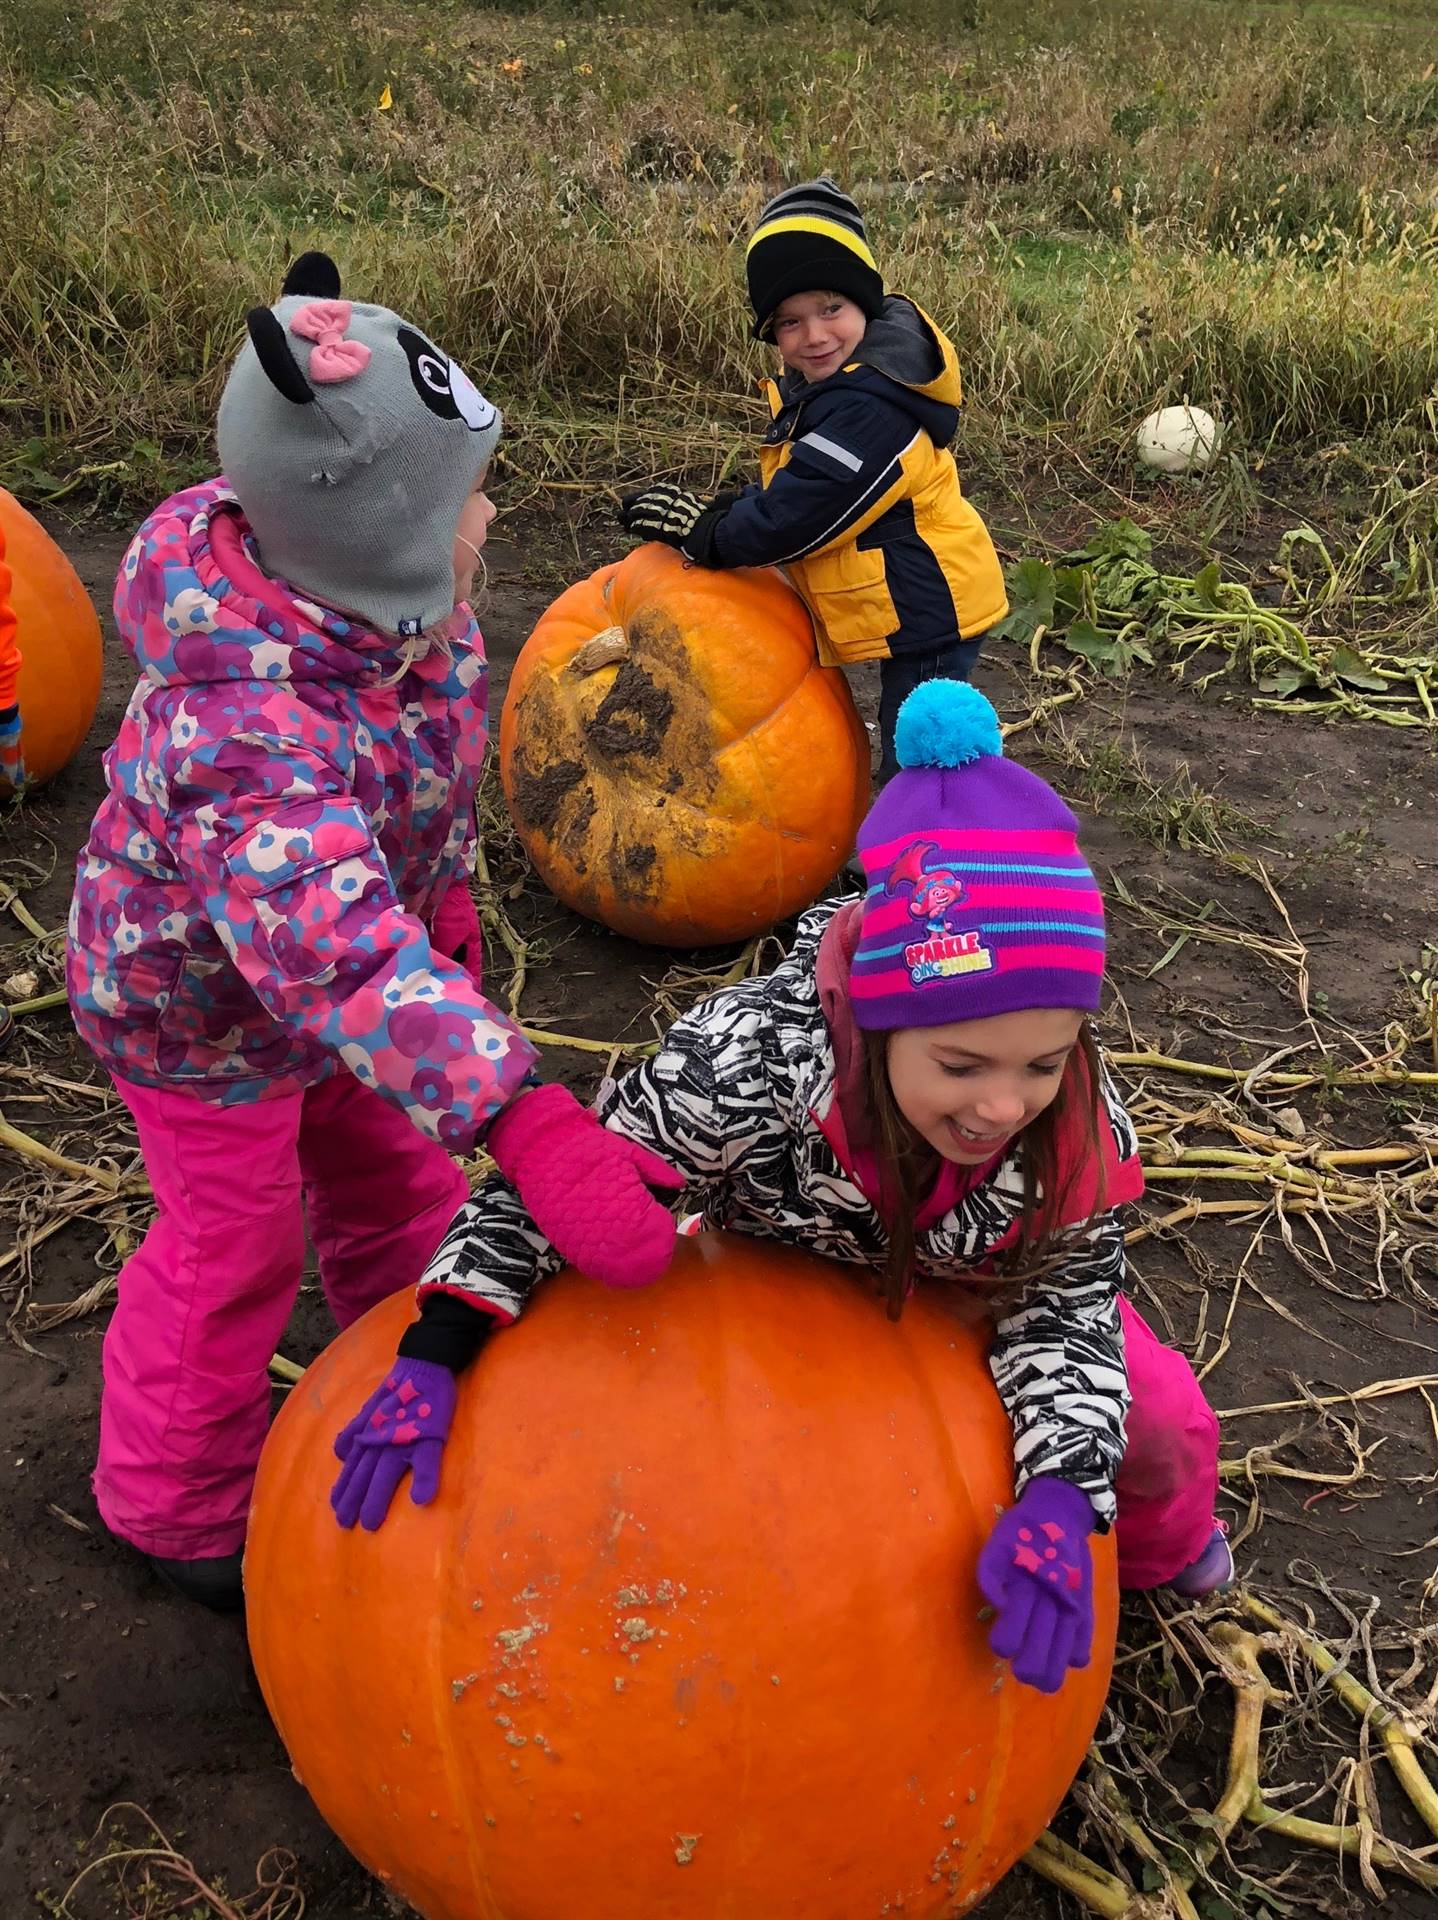 kindergarten students playing on large pumpkins